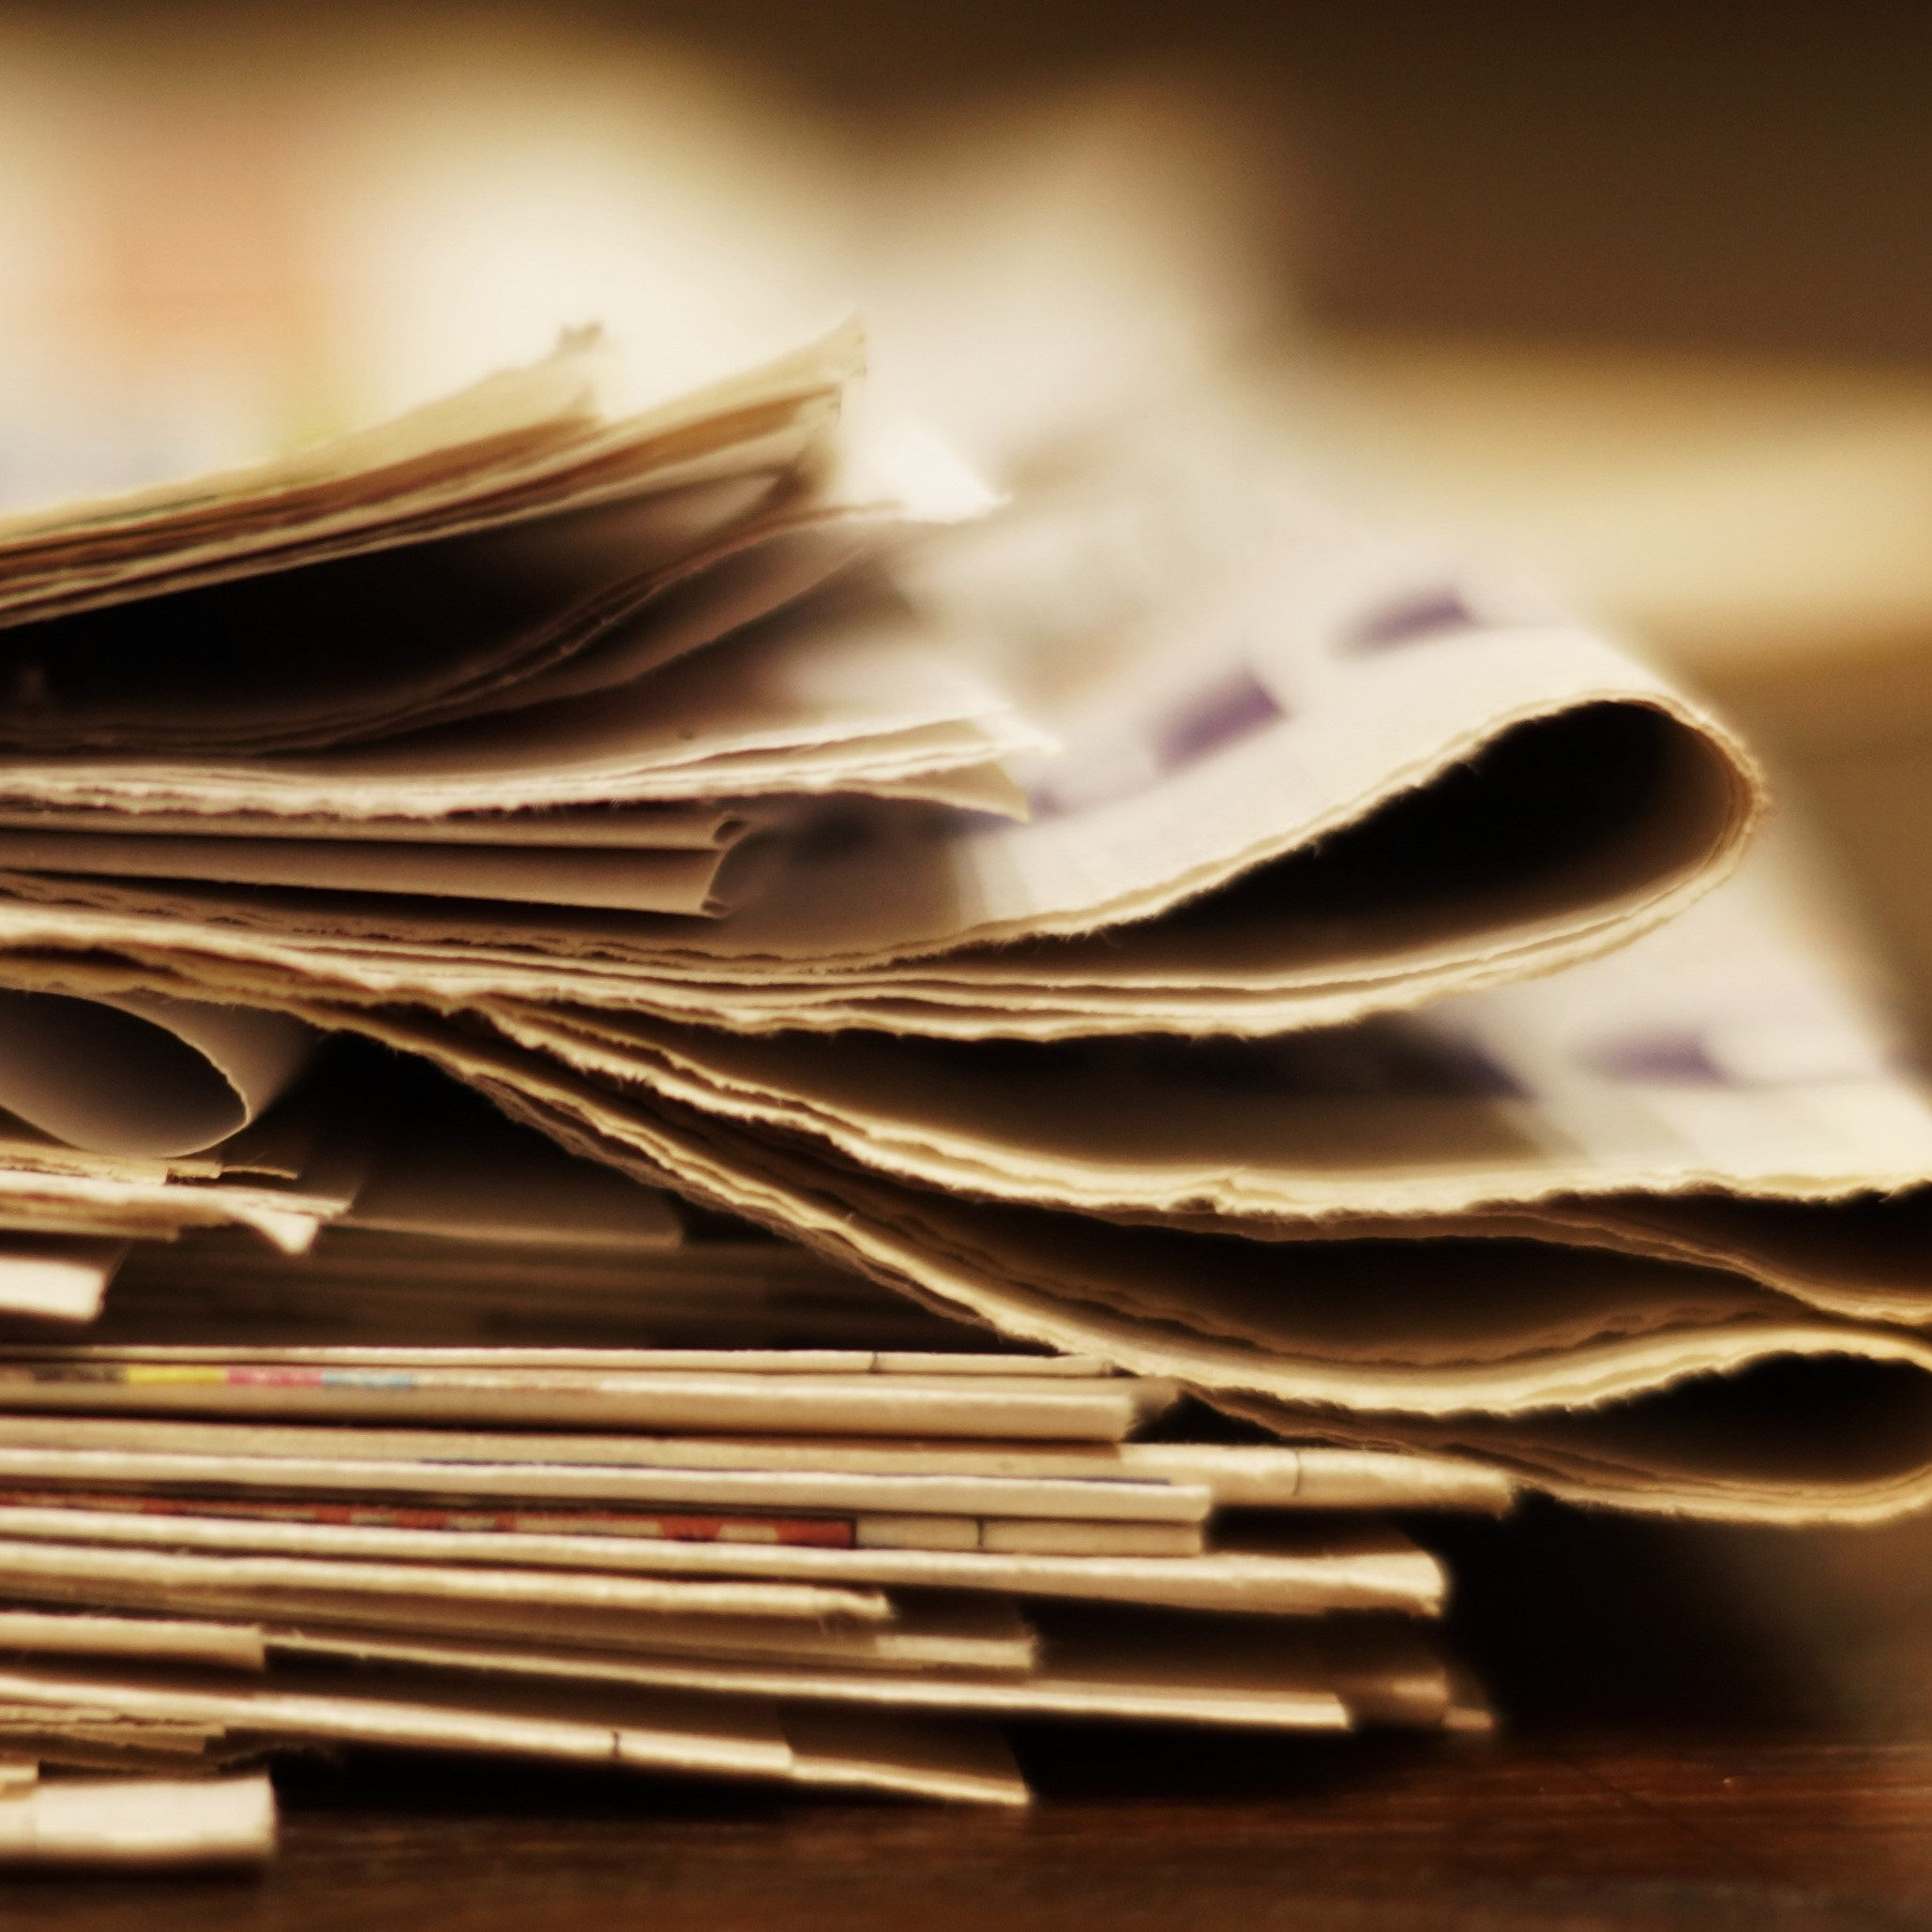 pile of newspapers up close